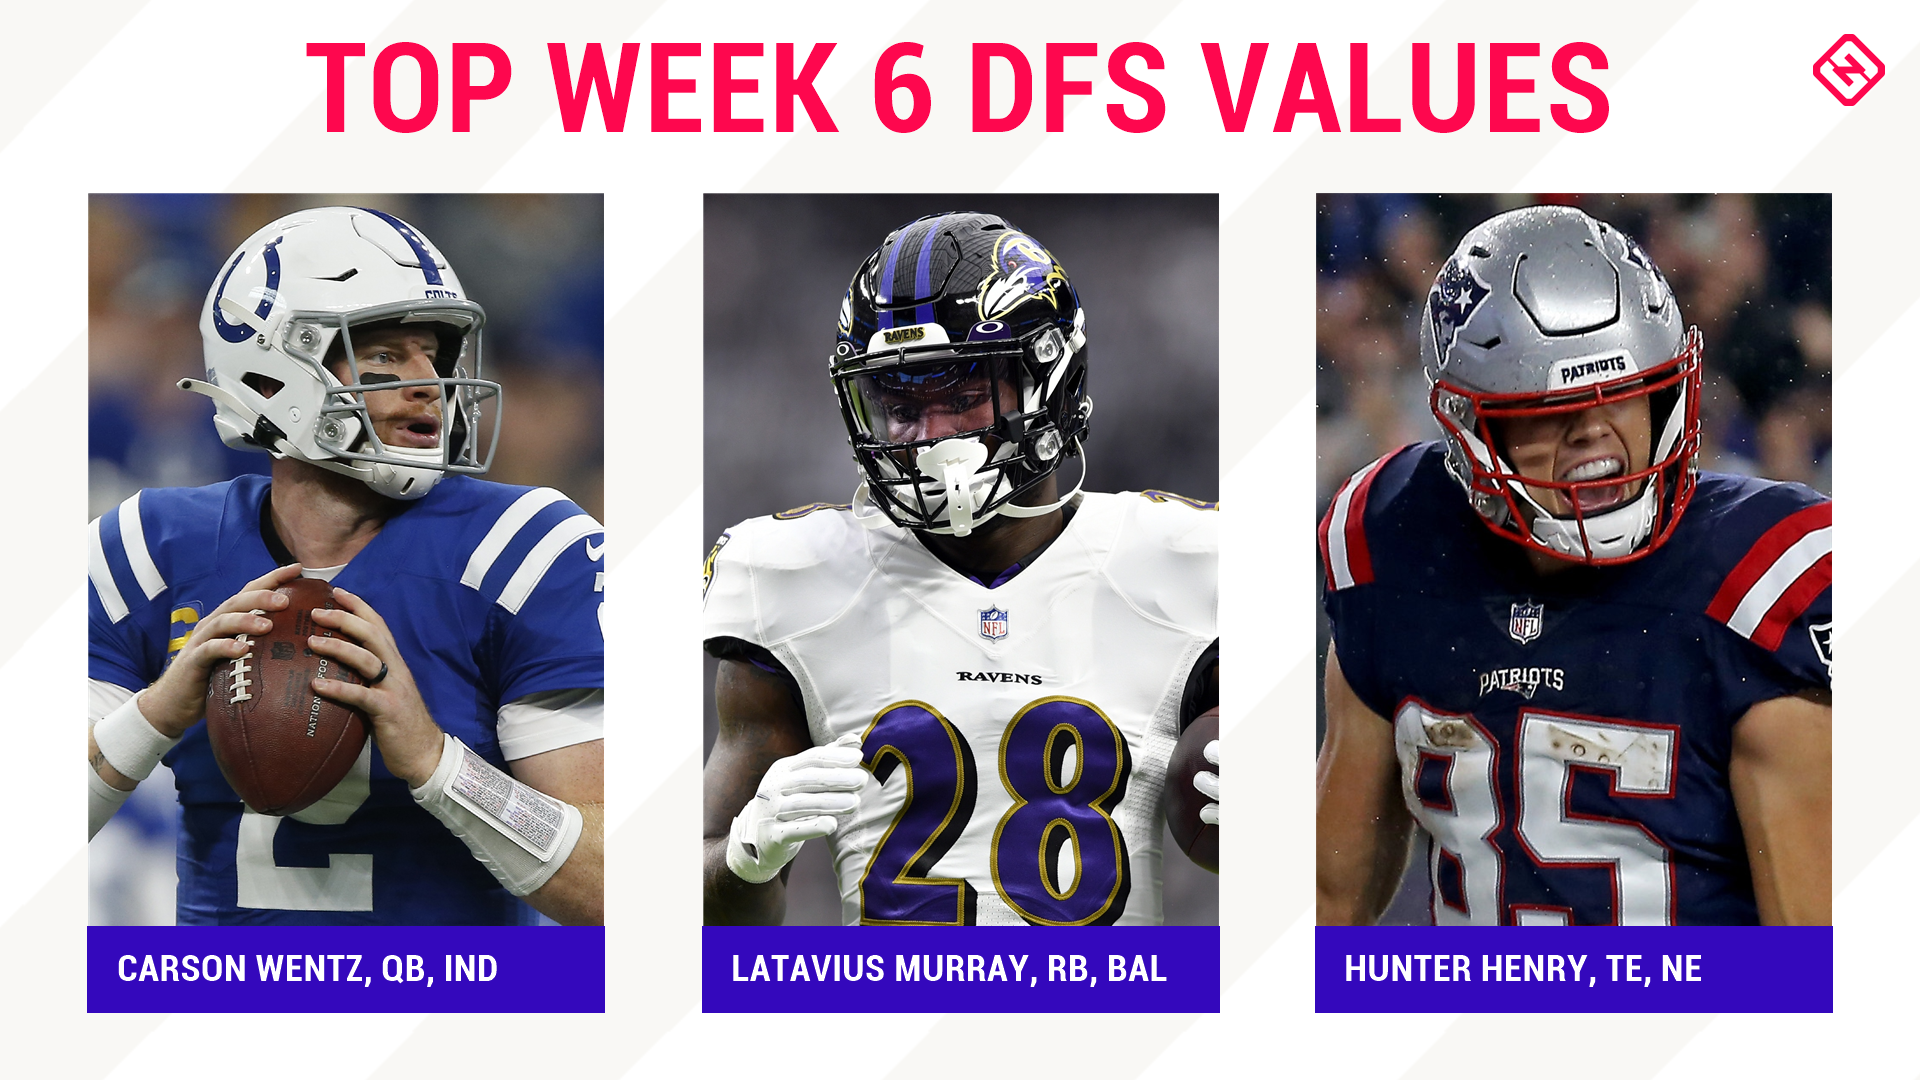 NFL DFS Picks Week 6: Best sleepers, value players for DraftKings, FanDuel daily fantasy football lineups